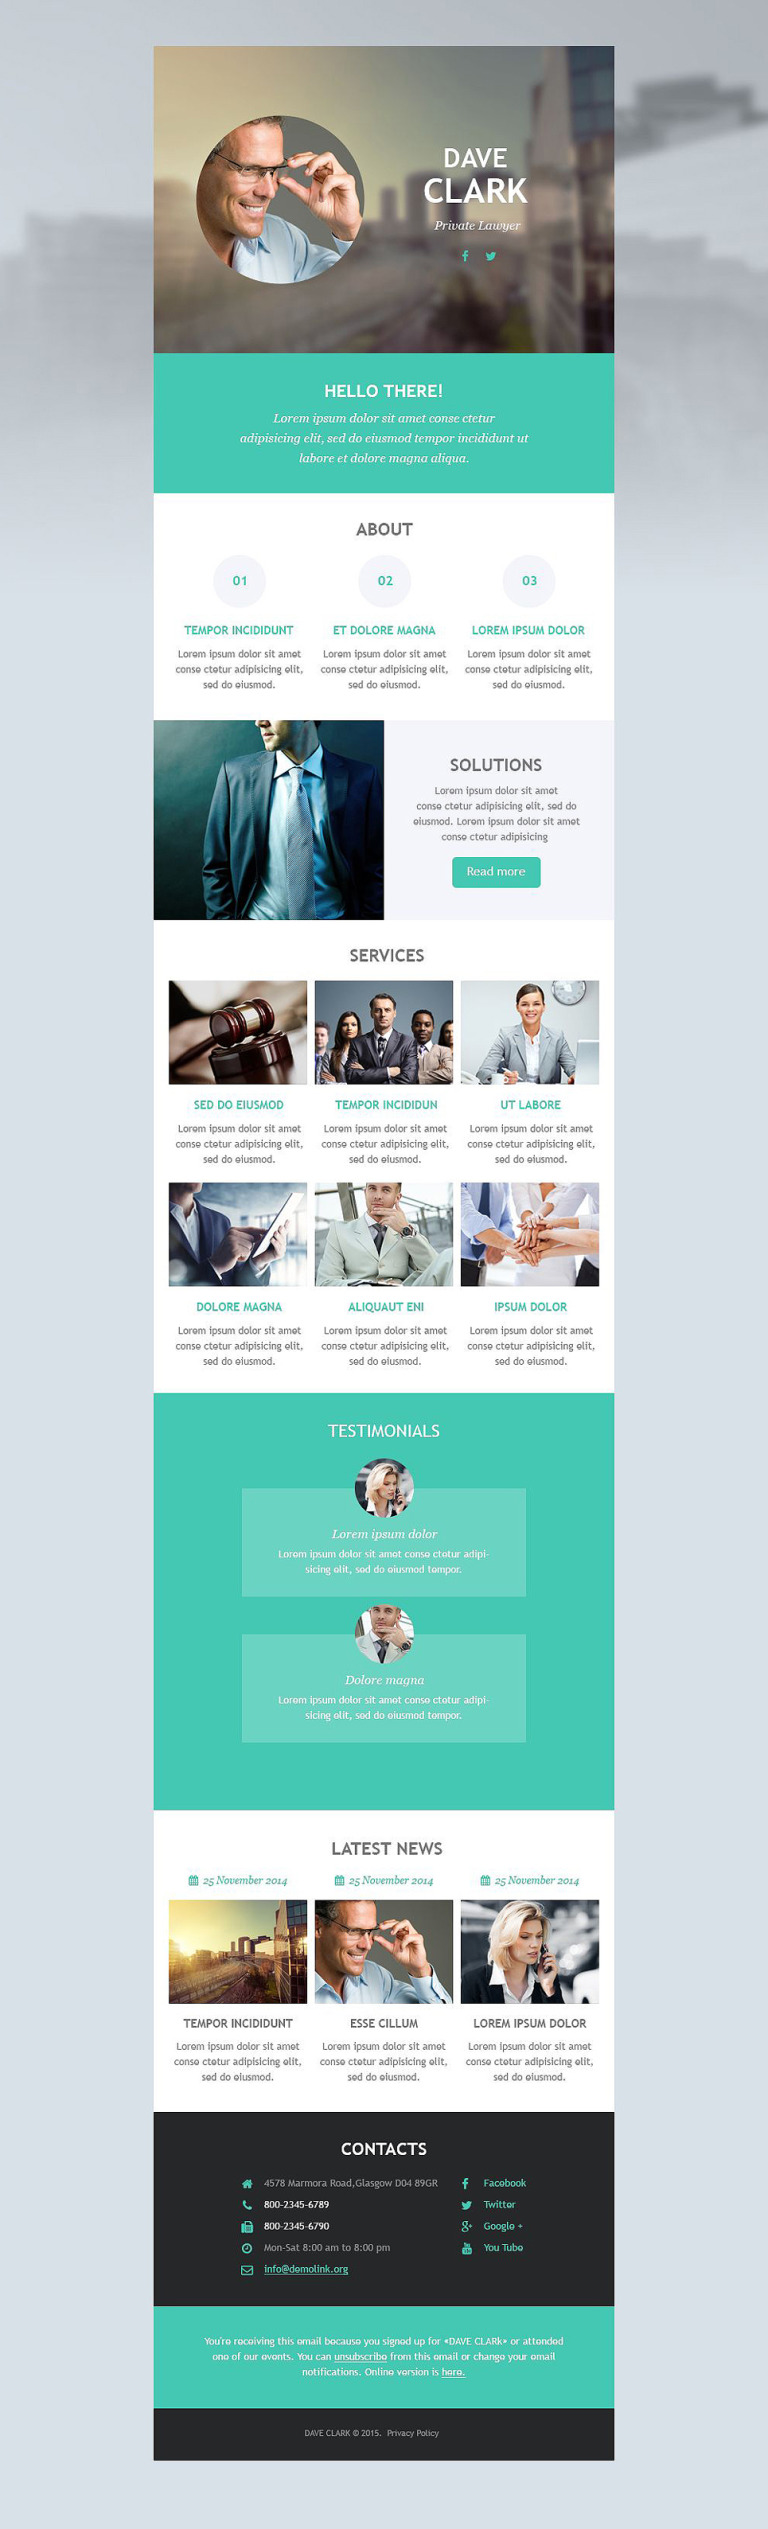 Lawyer Responsive Newsletter Template New Screenshots BIG